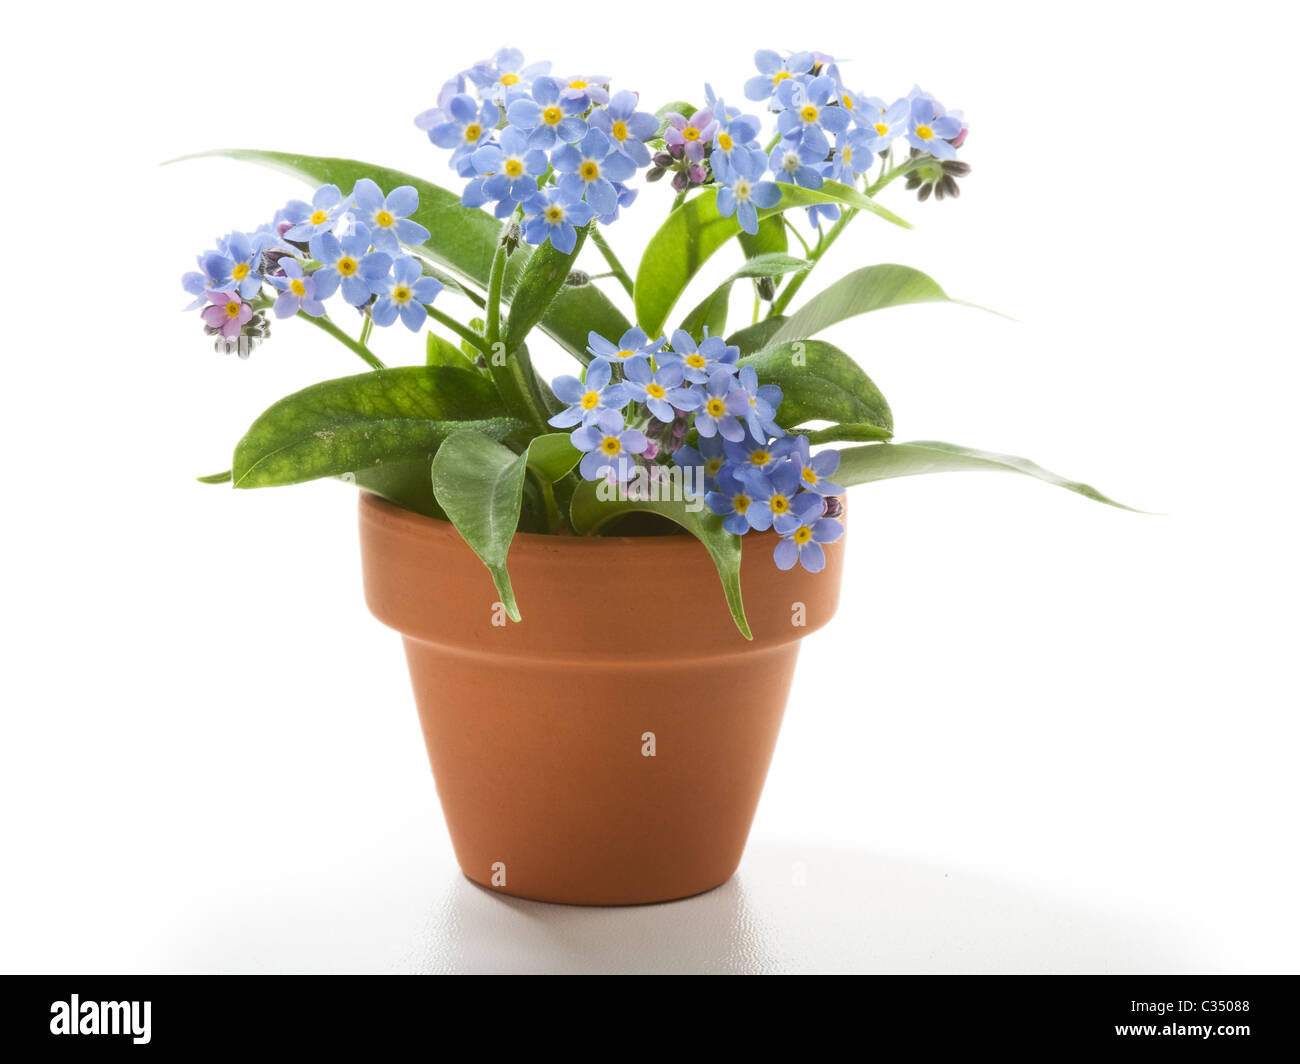 forget me not small beautiful flowers in flower pot stock photo 36374696 alamy. Black Bedroom Furniture Sets. Home Design Ideas